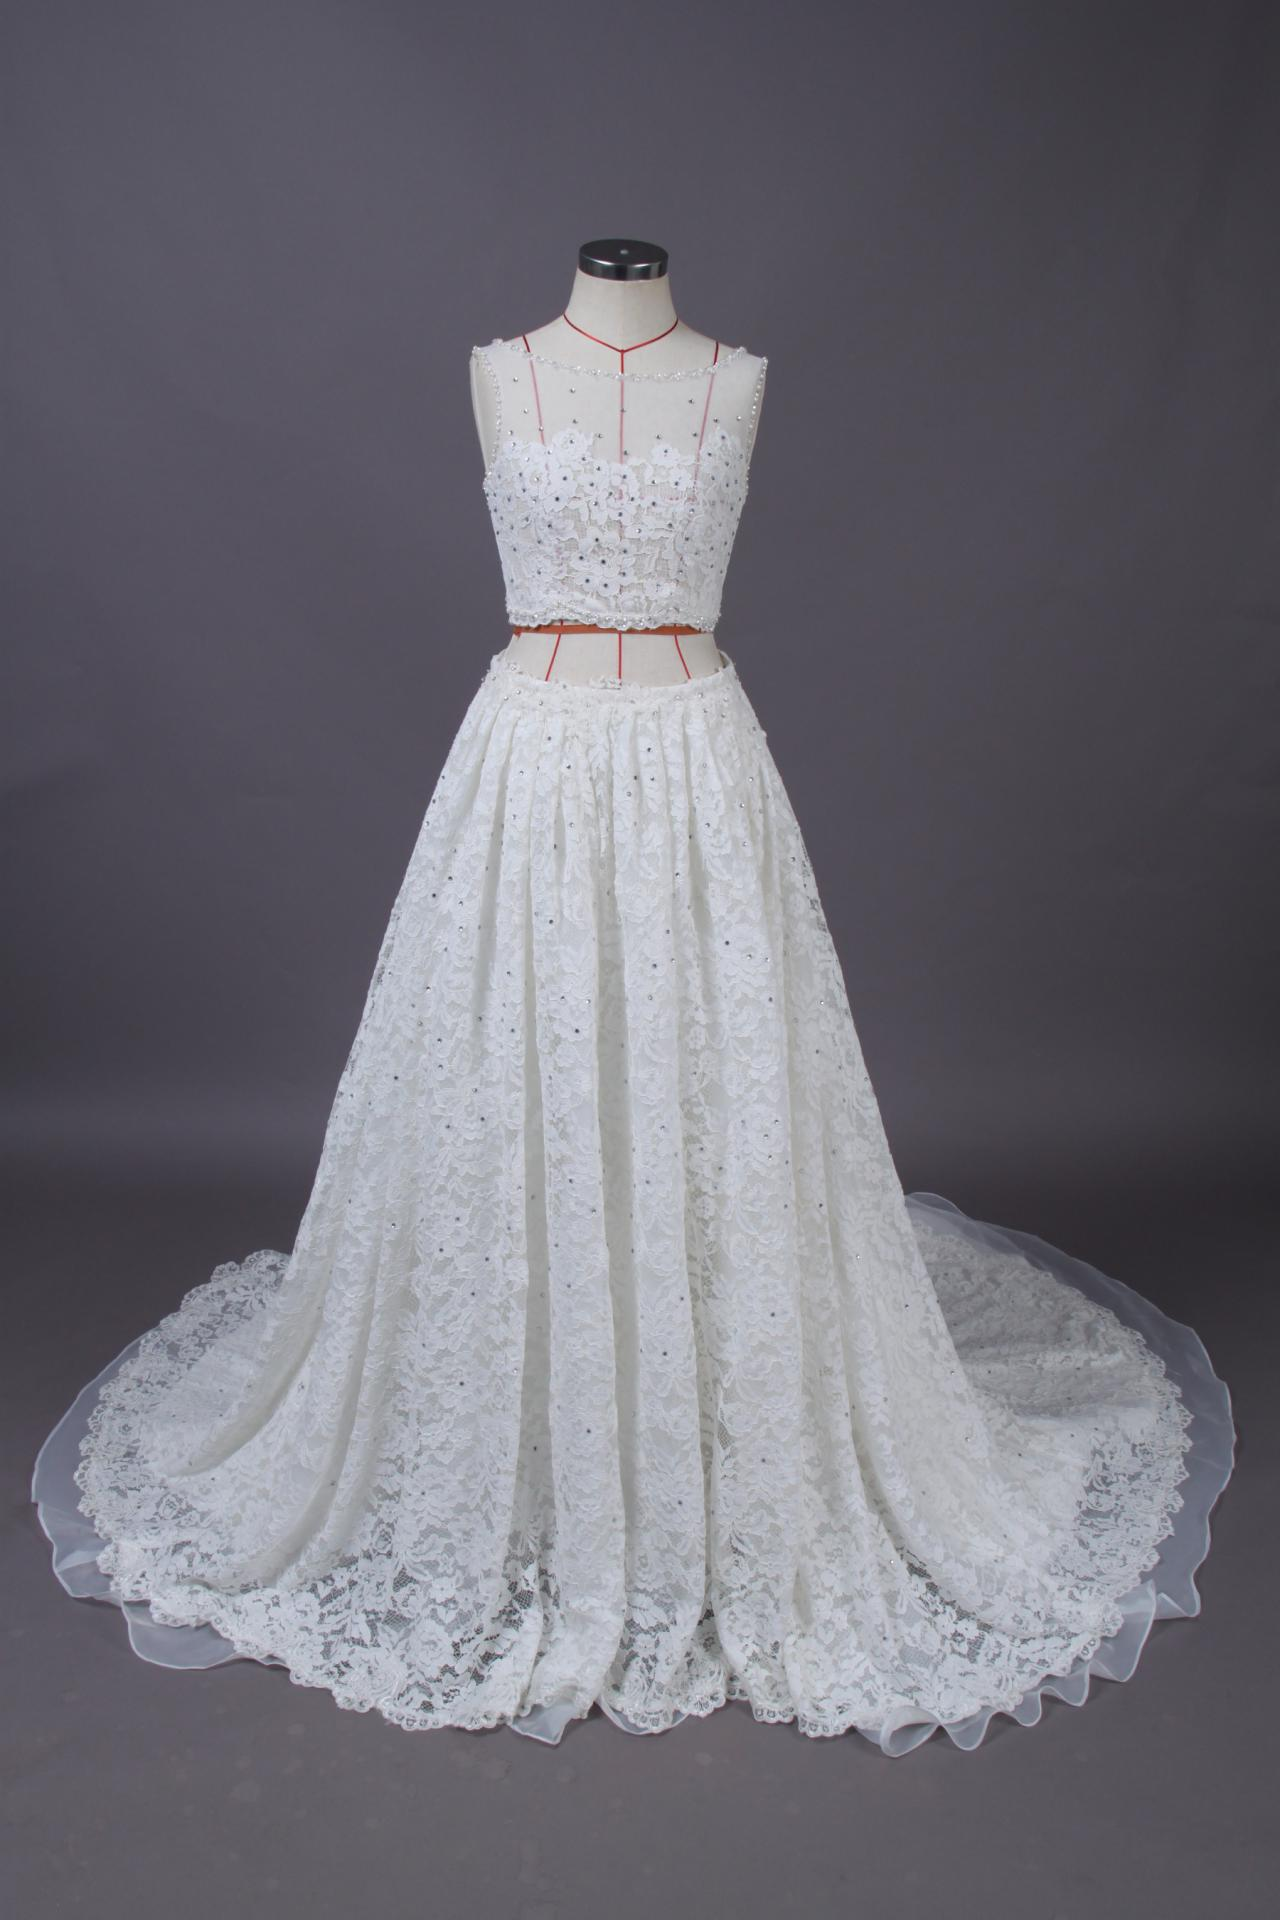 Two Pieces Wedding Dress,Long Wedding Dresses, Wedding Dress,Wedding Dress,Wedding Gown,Bridal Gown,Bride Dresses, A-line Wedding Dress,Lace Wedding Dress,Beaded Wedding Gown,Crystal Wedding Gown